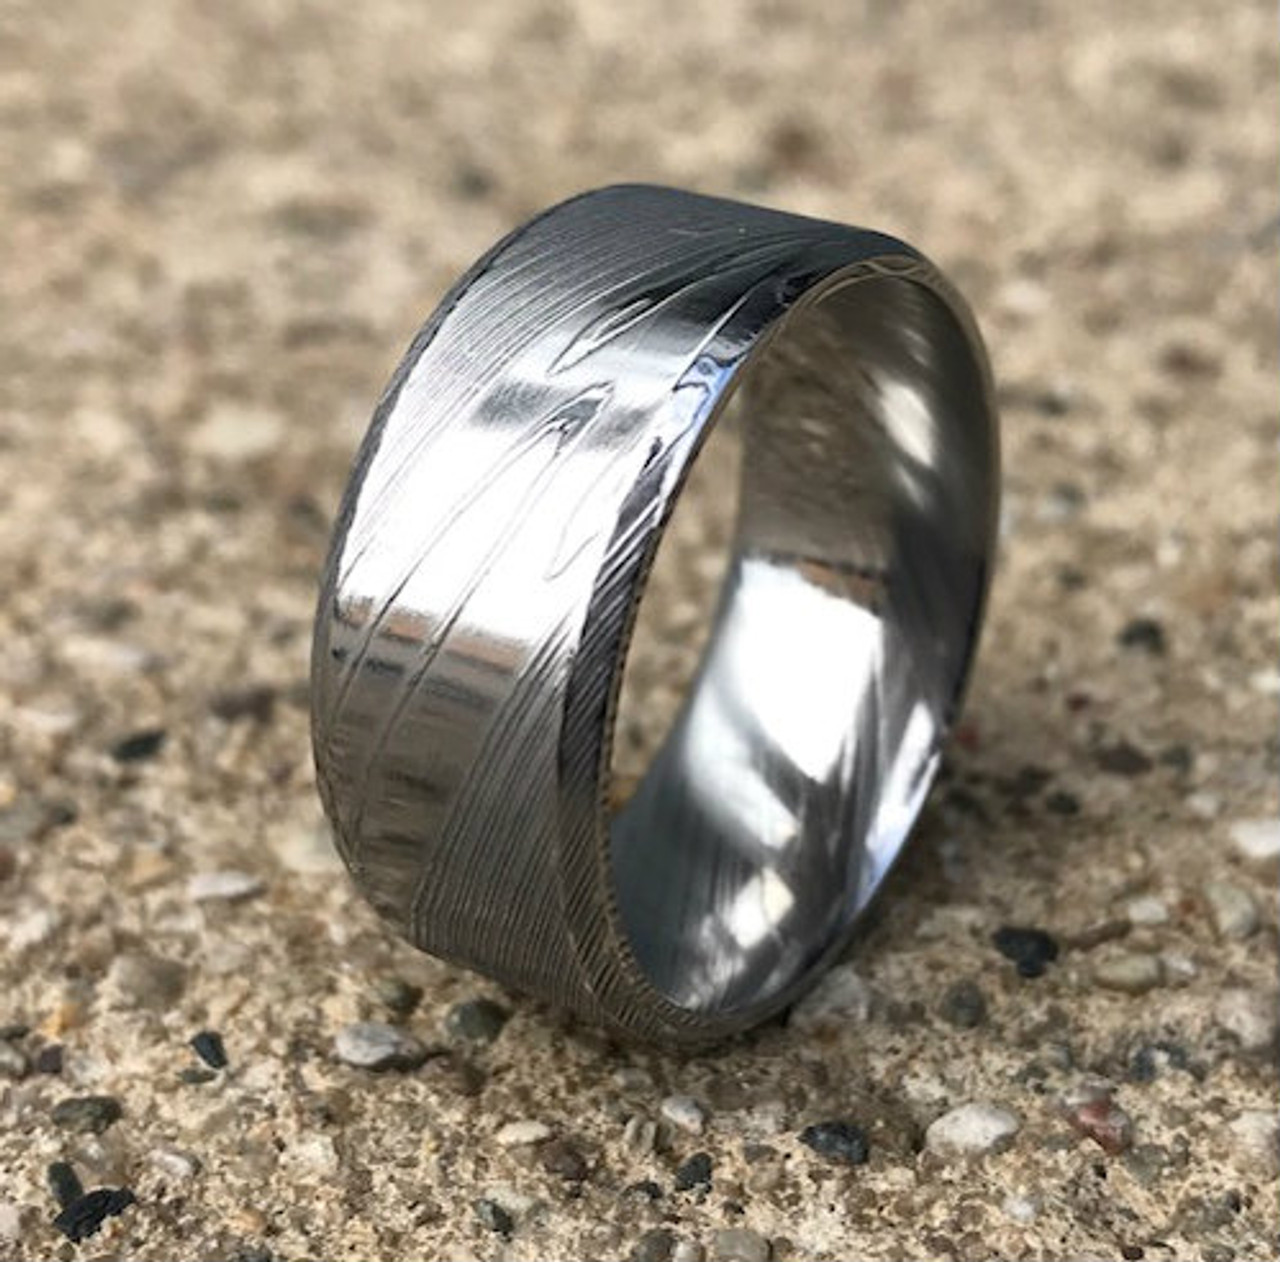 stainless wedding stylist pcs hers inspiration and download steel ring amazoncom corners his engagement rings